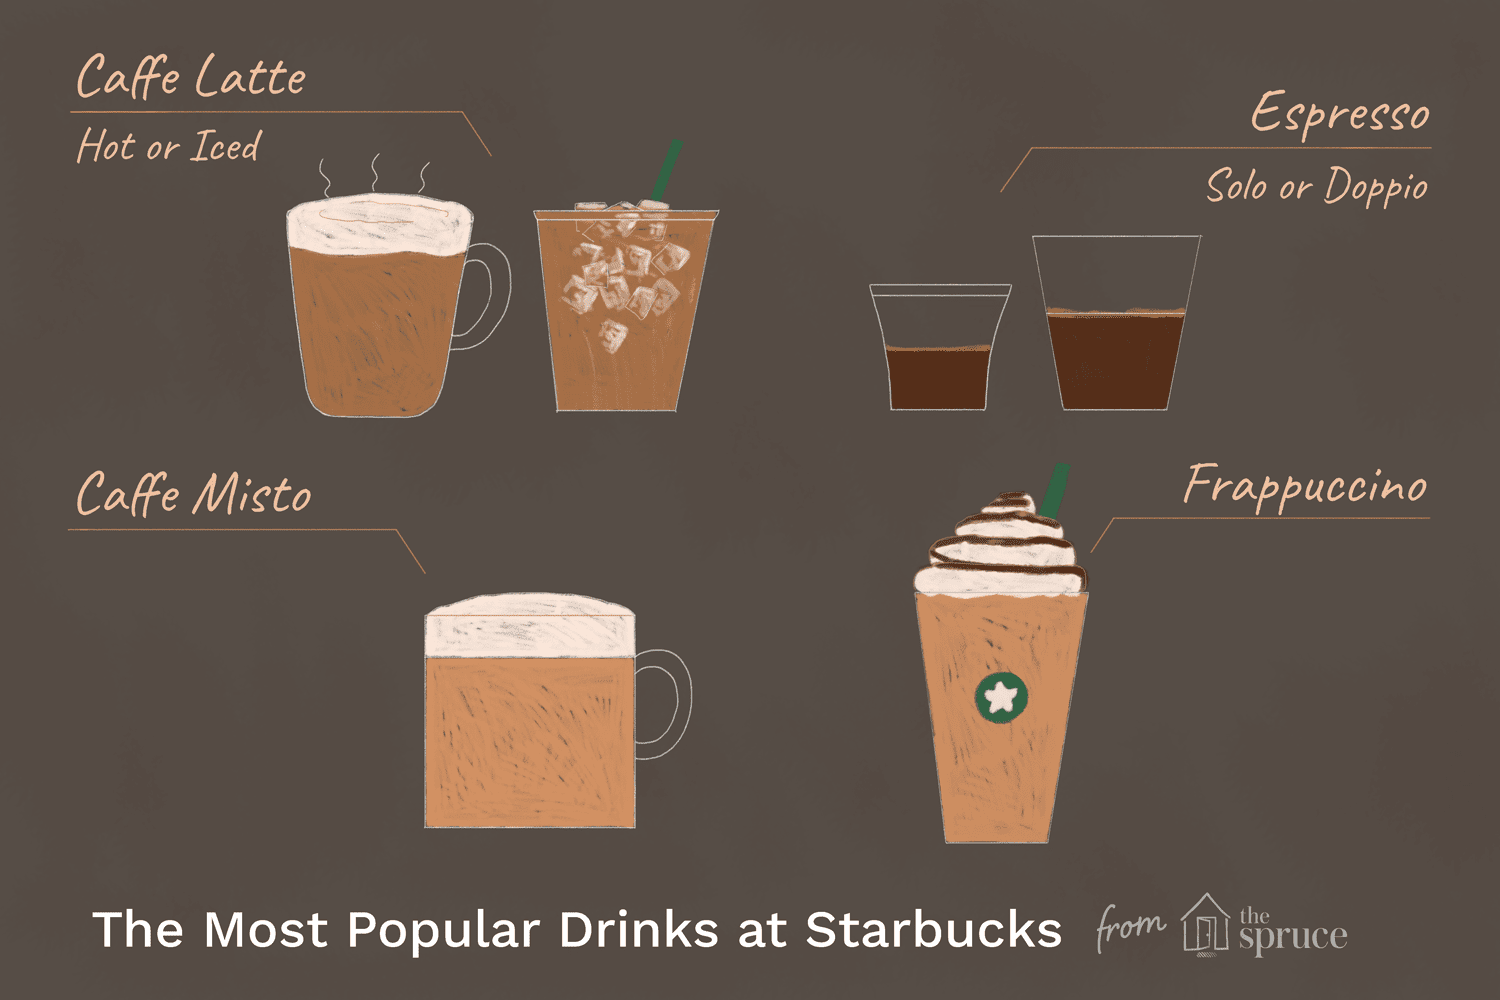 Ilration For The Most Por Drinks At Starbucks